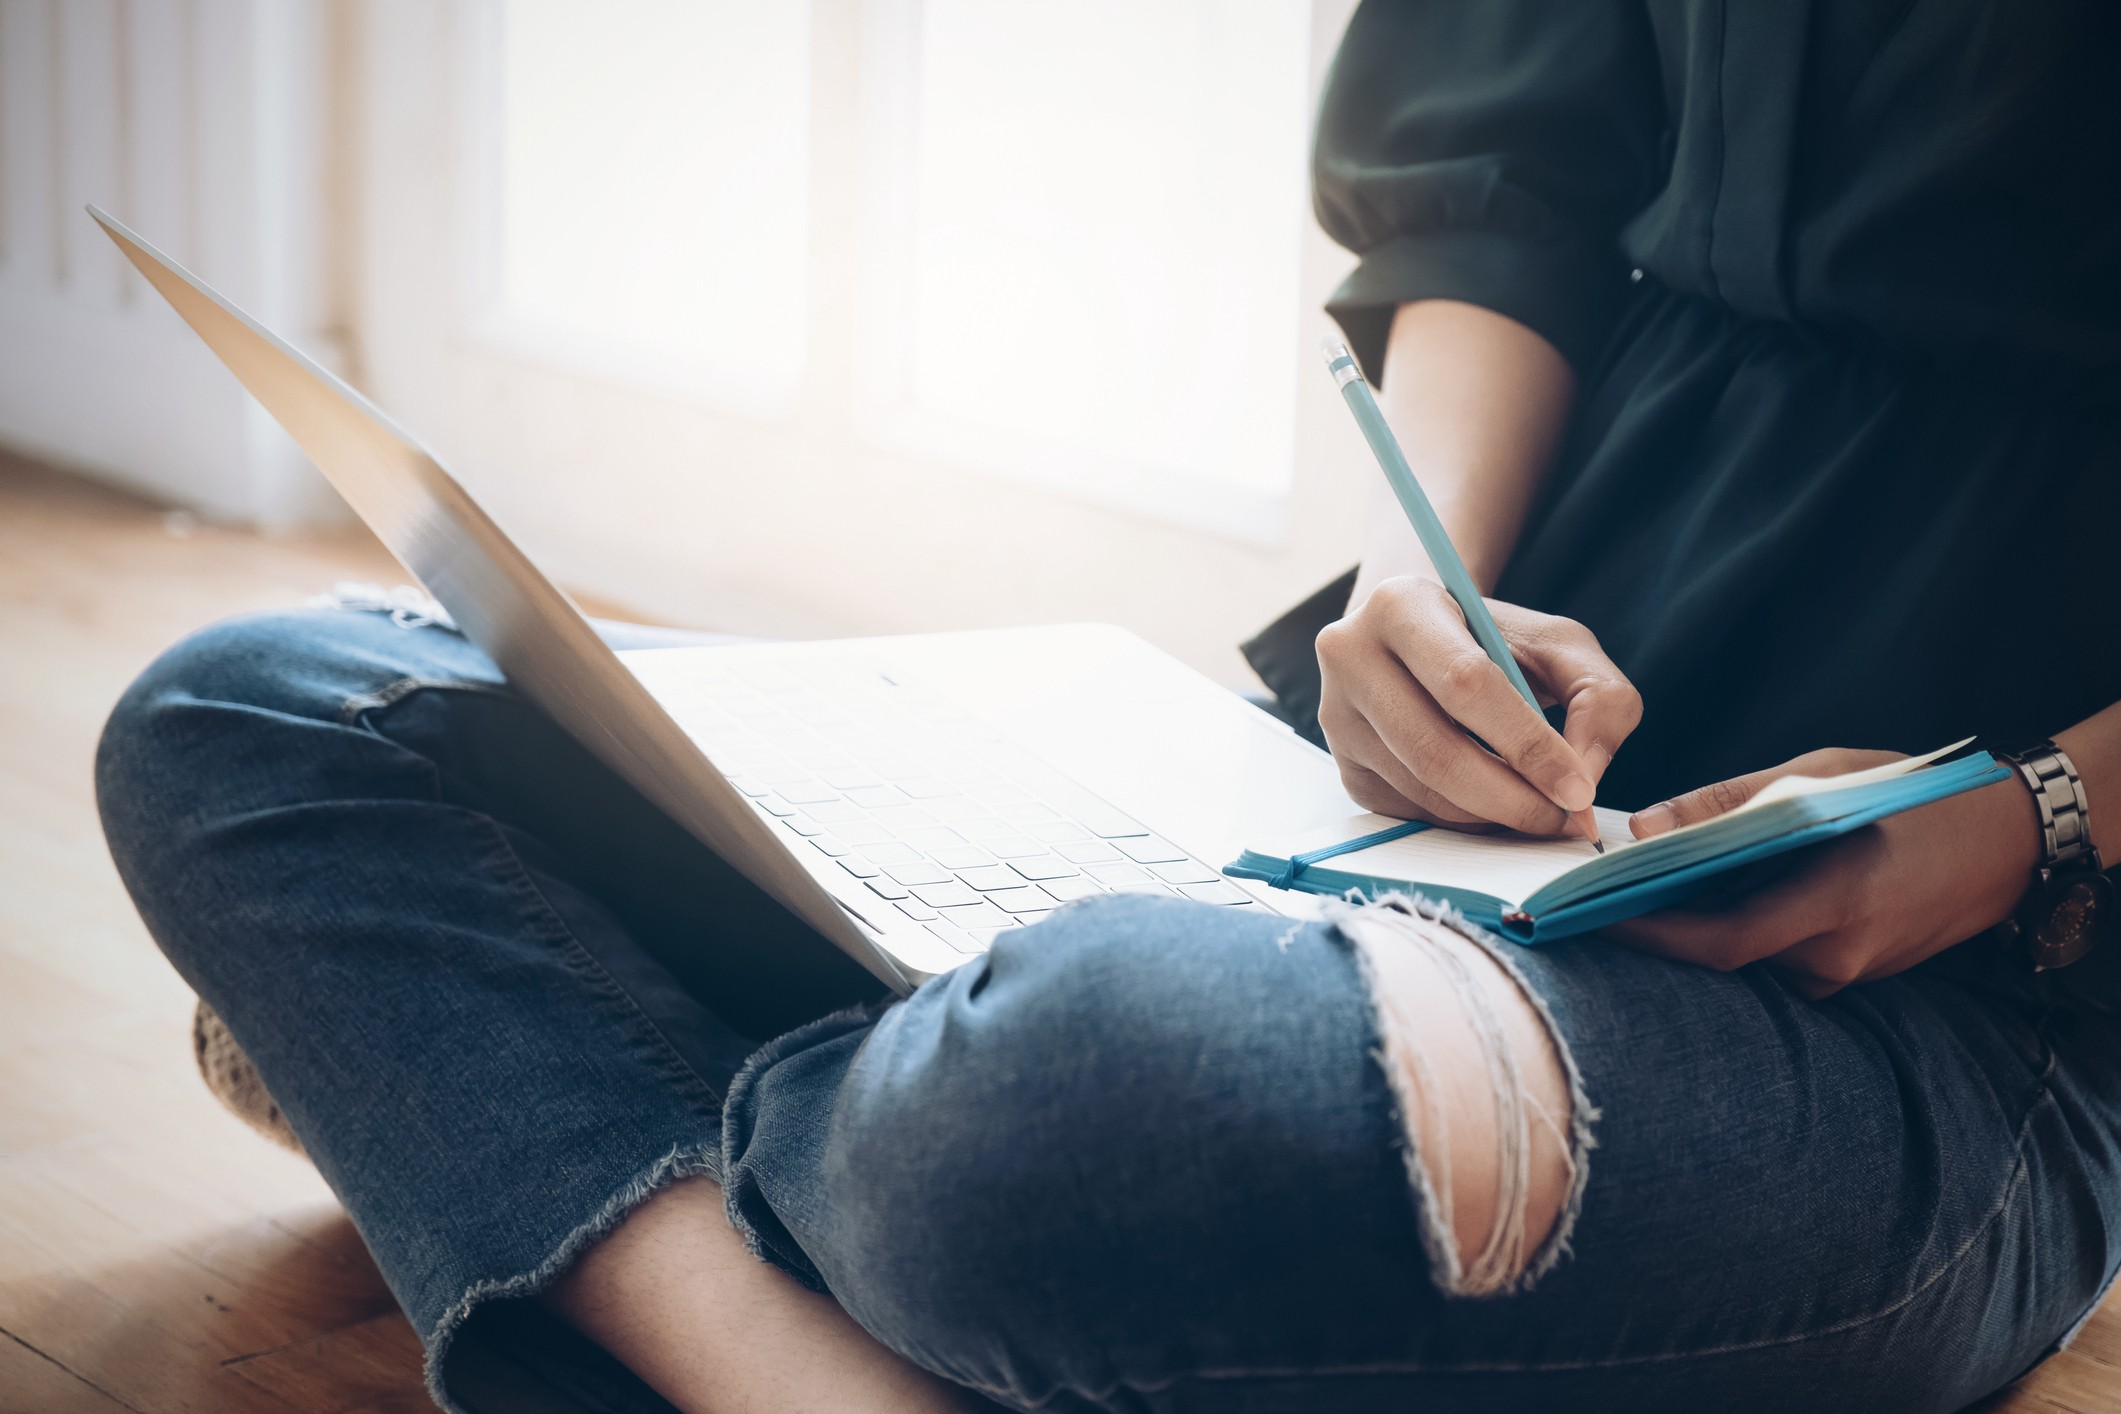 A photo of a woman writing in her journal while her laptop is on her lap.